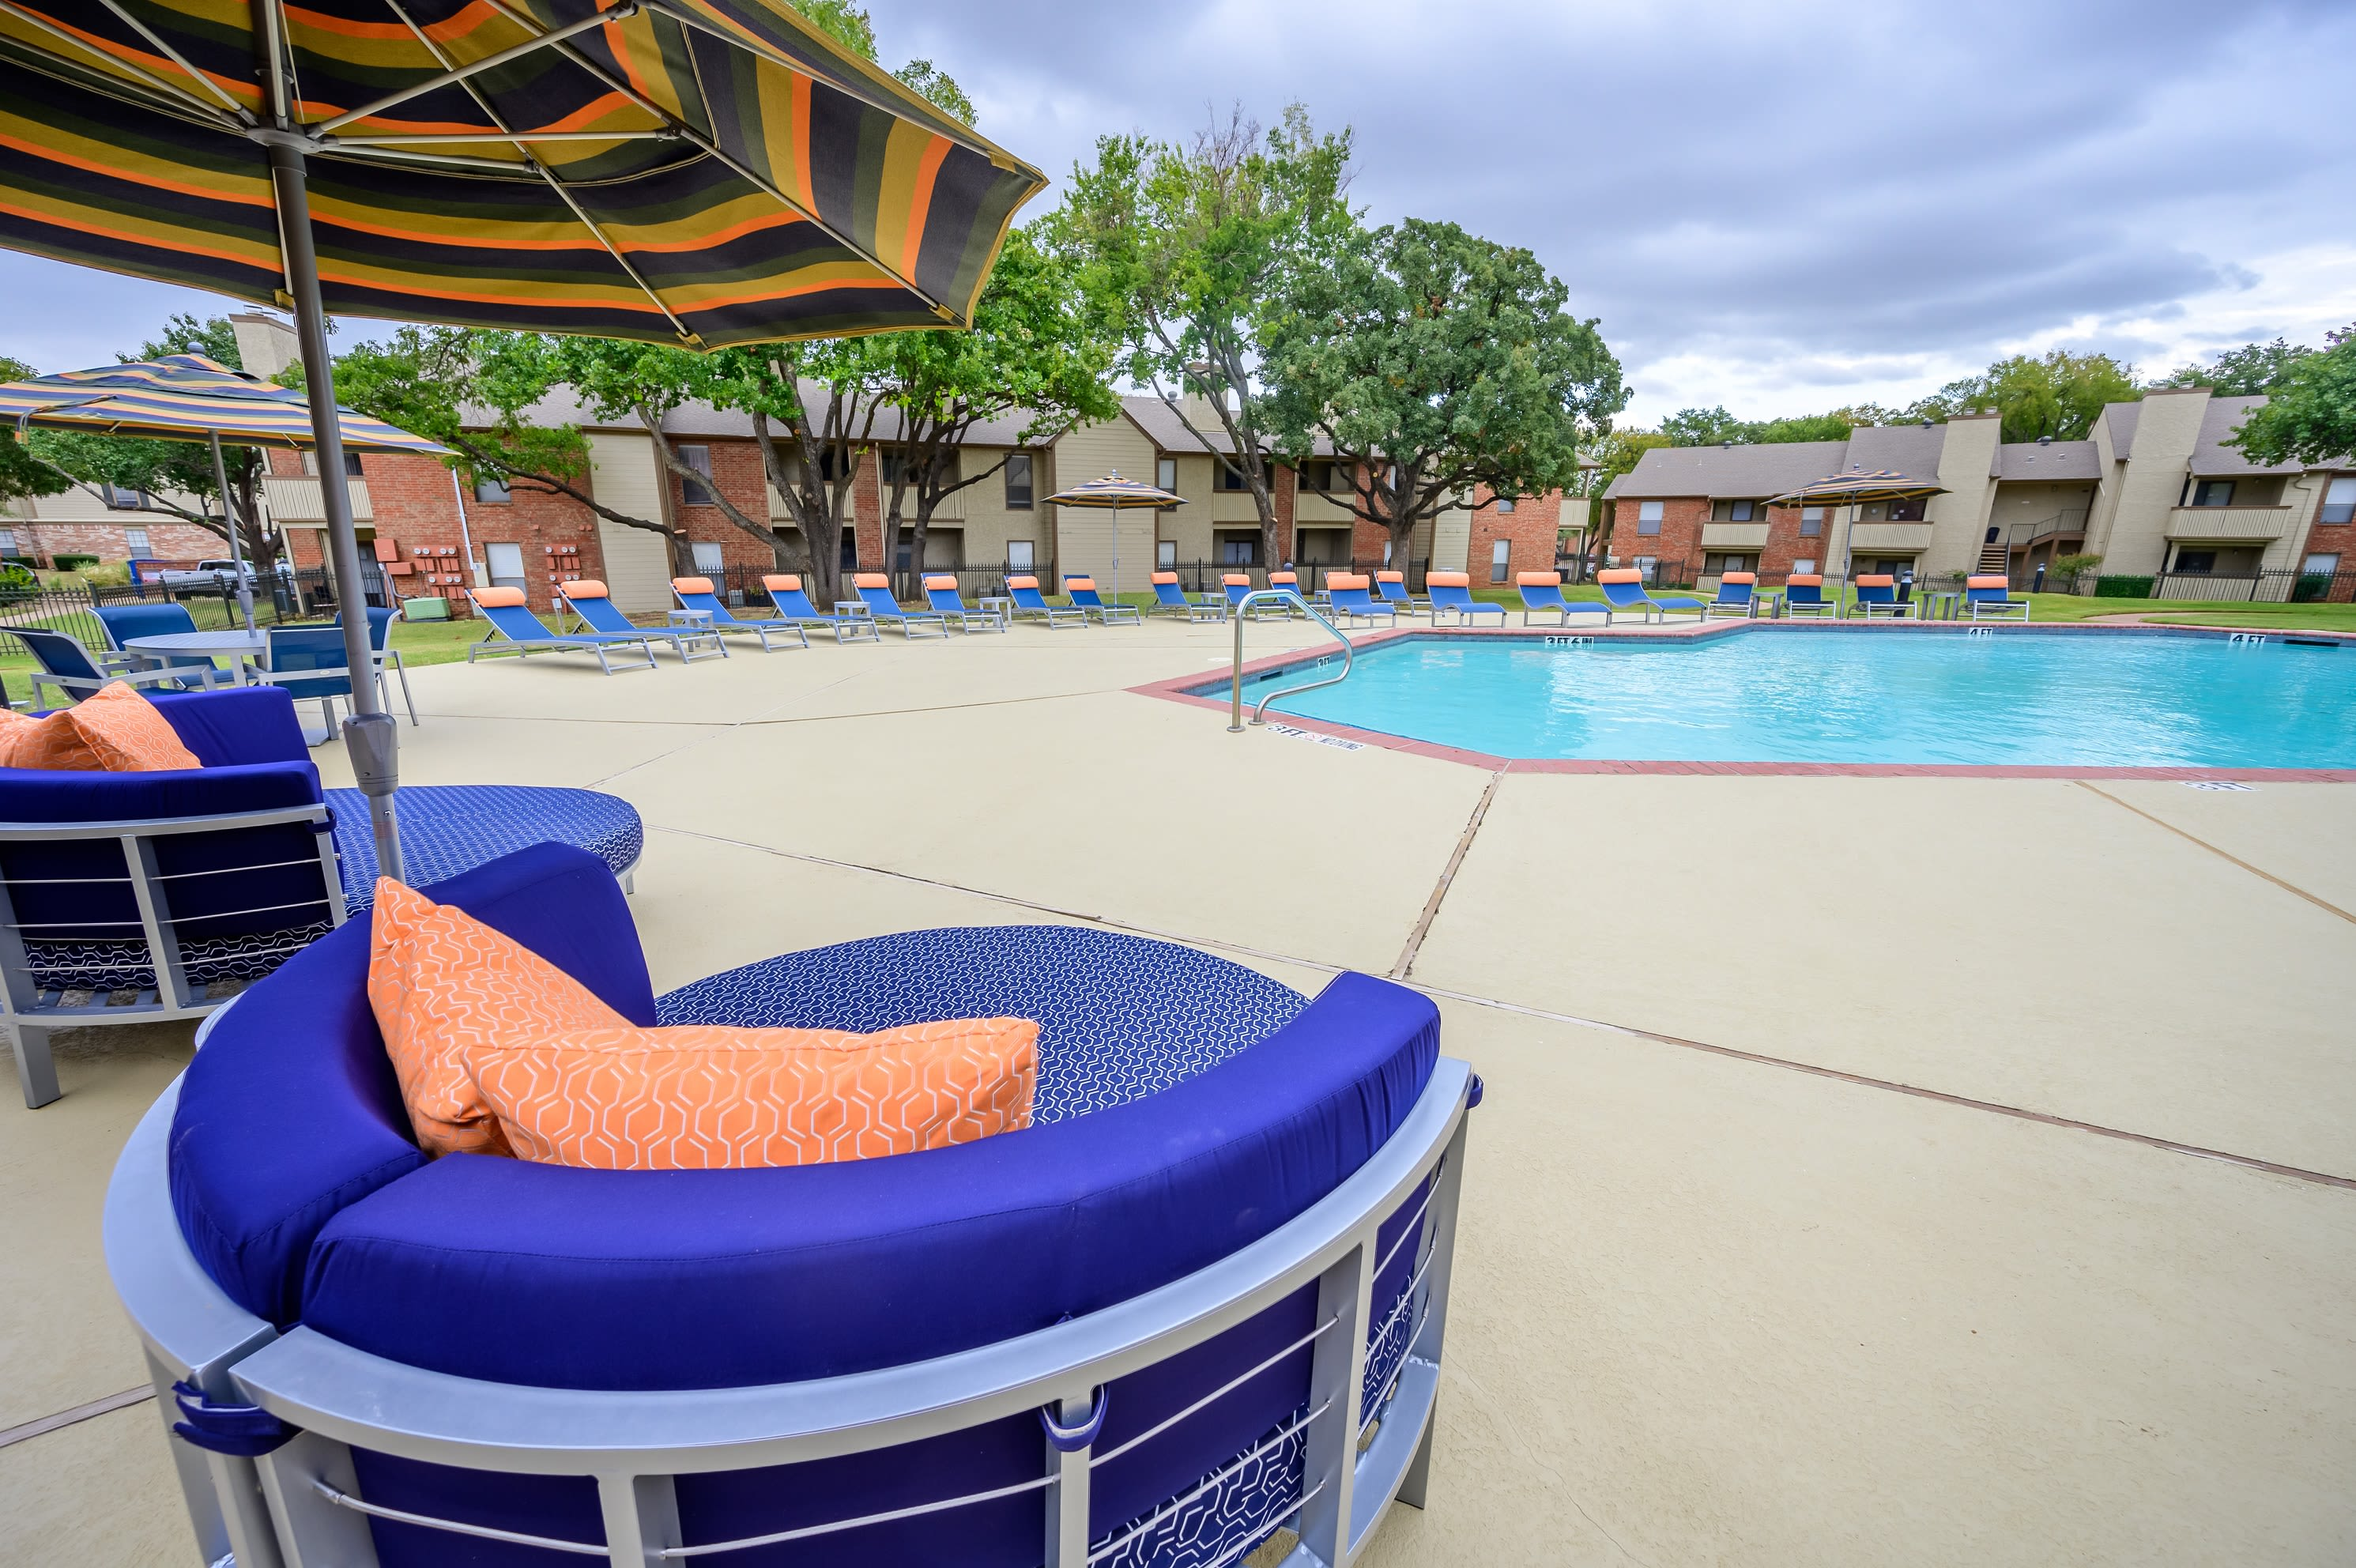 Pool with comfy chairs to sit in around it at The Logan in Bedford, Texas